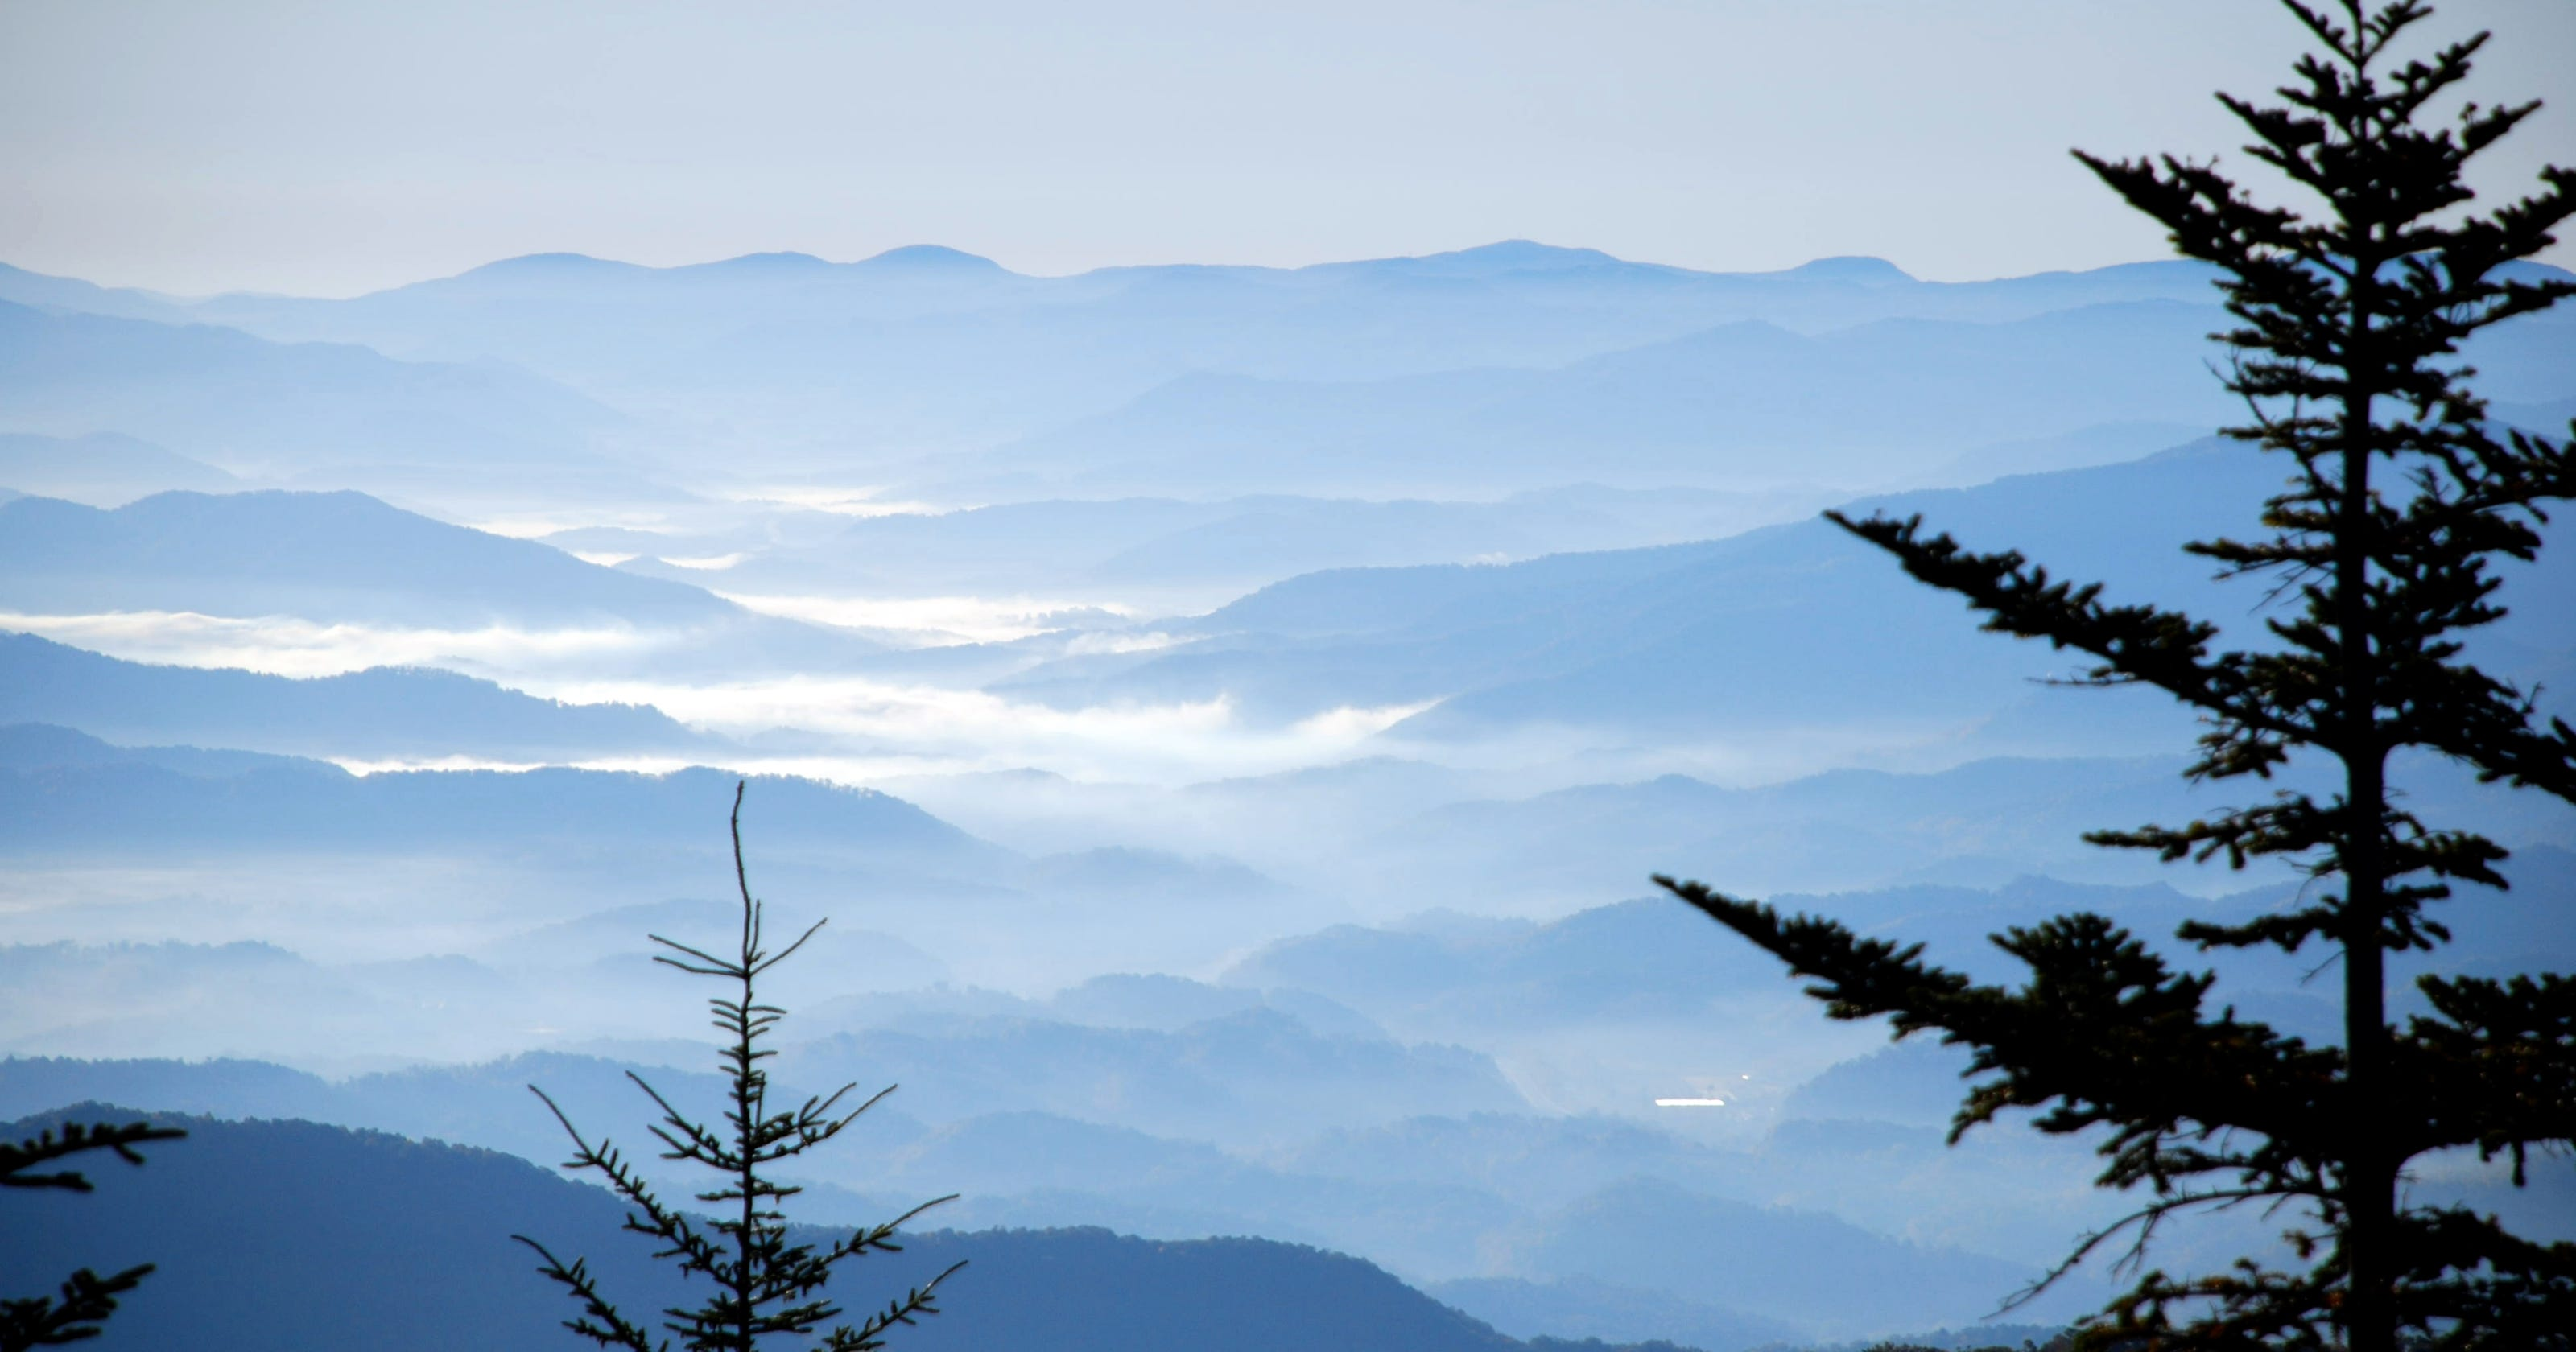 Great Smoky Mountains: Lush forests, falls and black bears